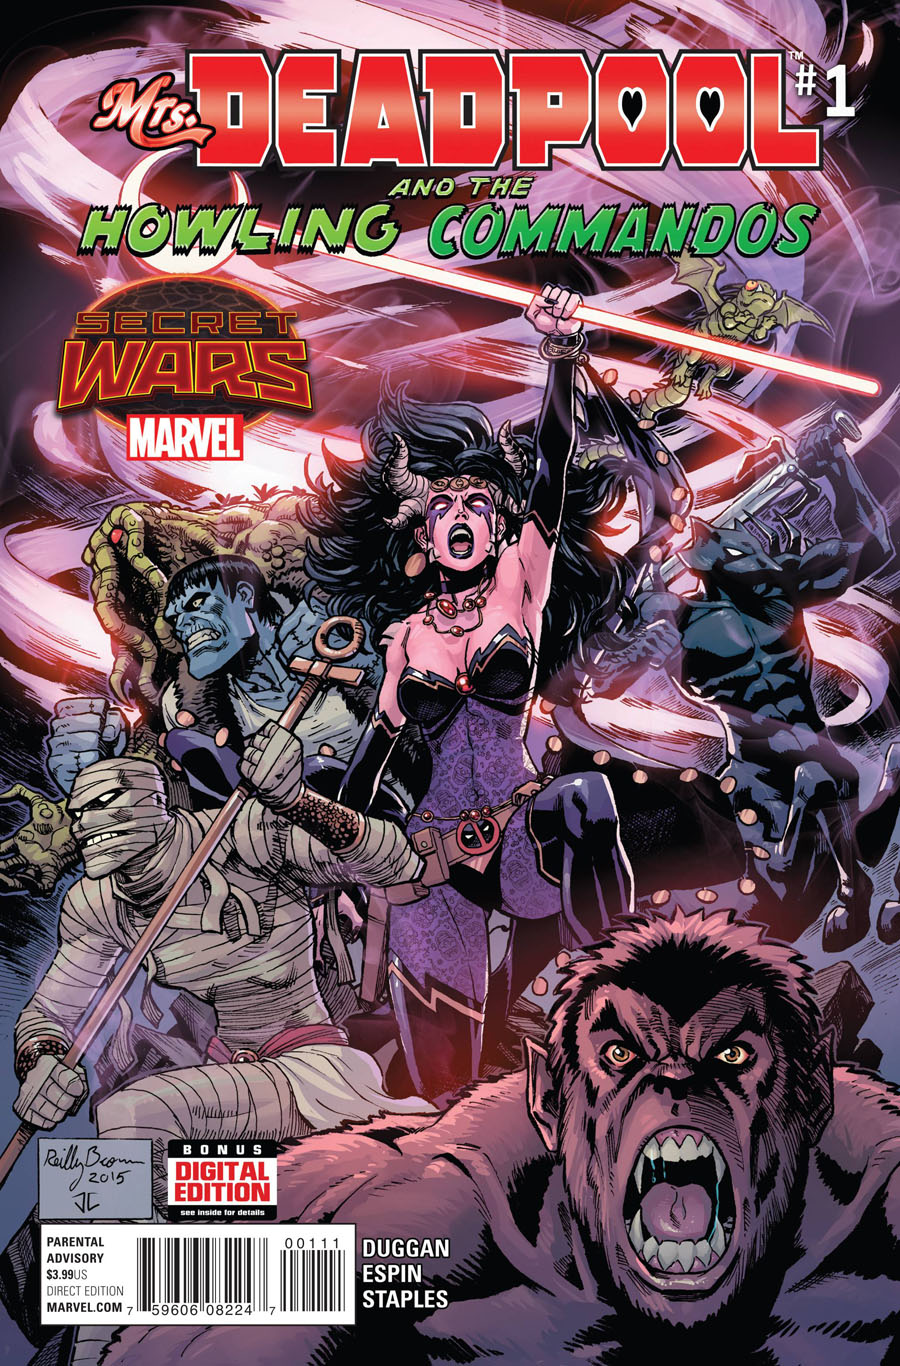 Mrs Deadpool And The Howling Commandos #1 Cover A 1st Ptg Regular Reilly Brown Cover (Secret Wars Warzones Tie-In)